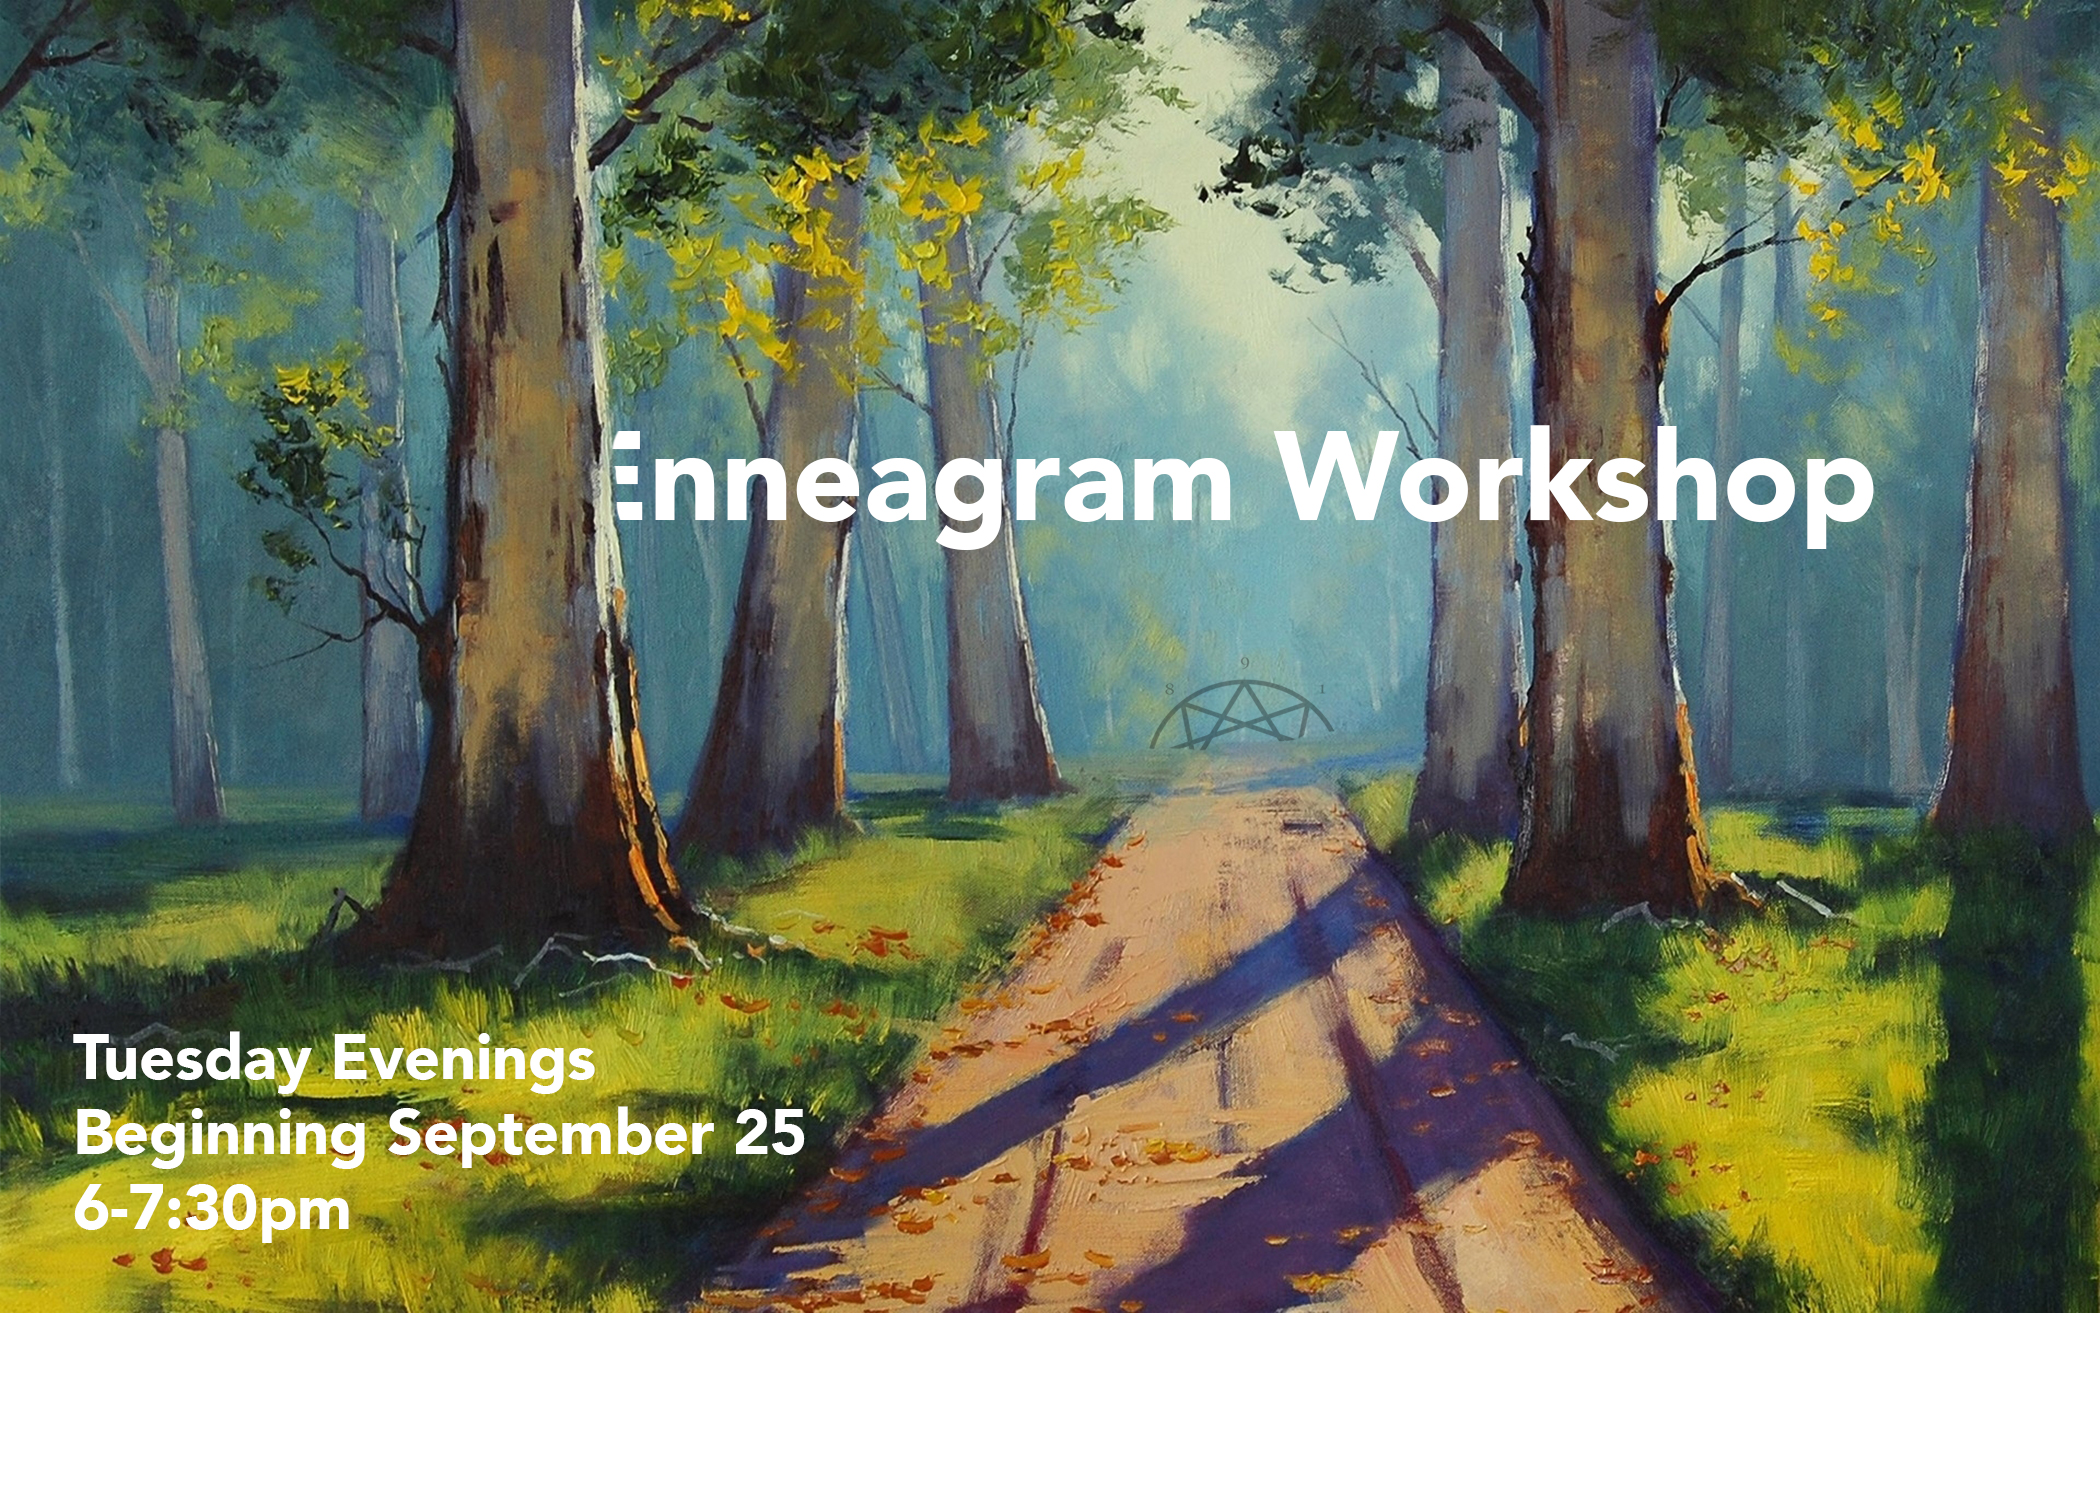 Enneagram Workshop.jpg